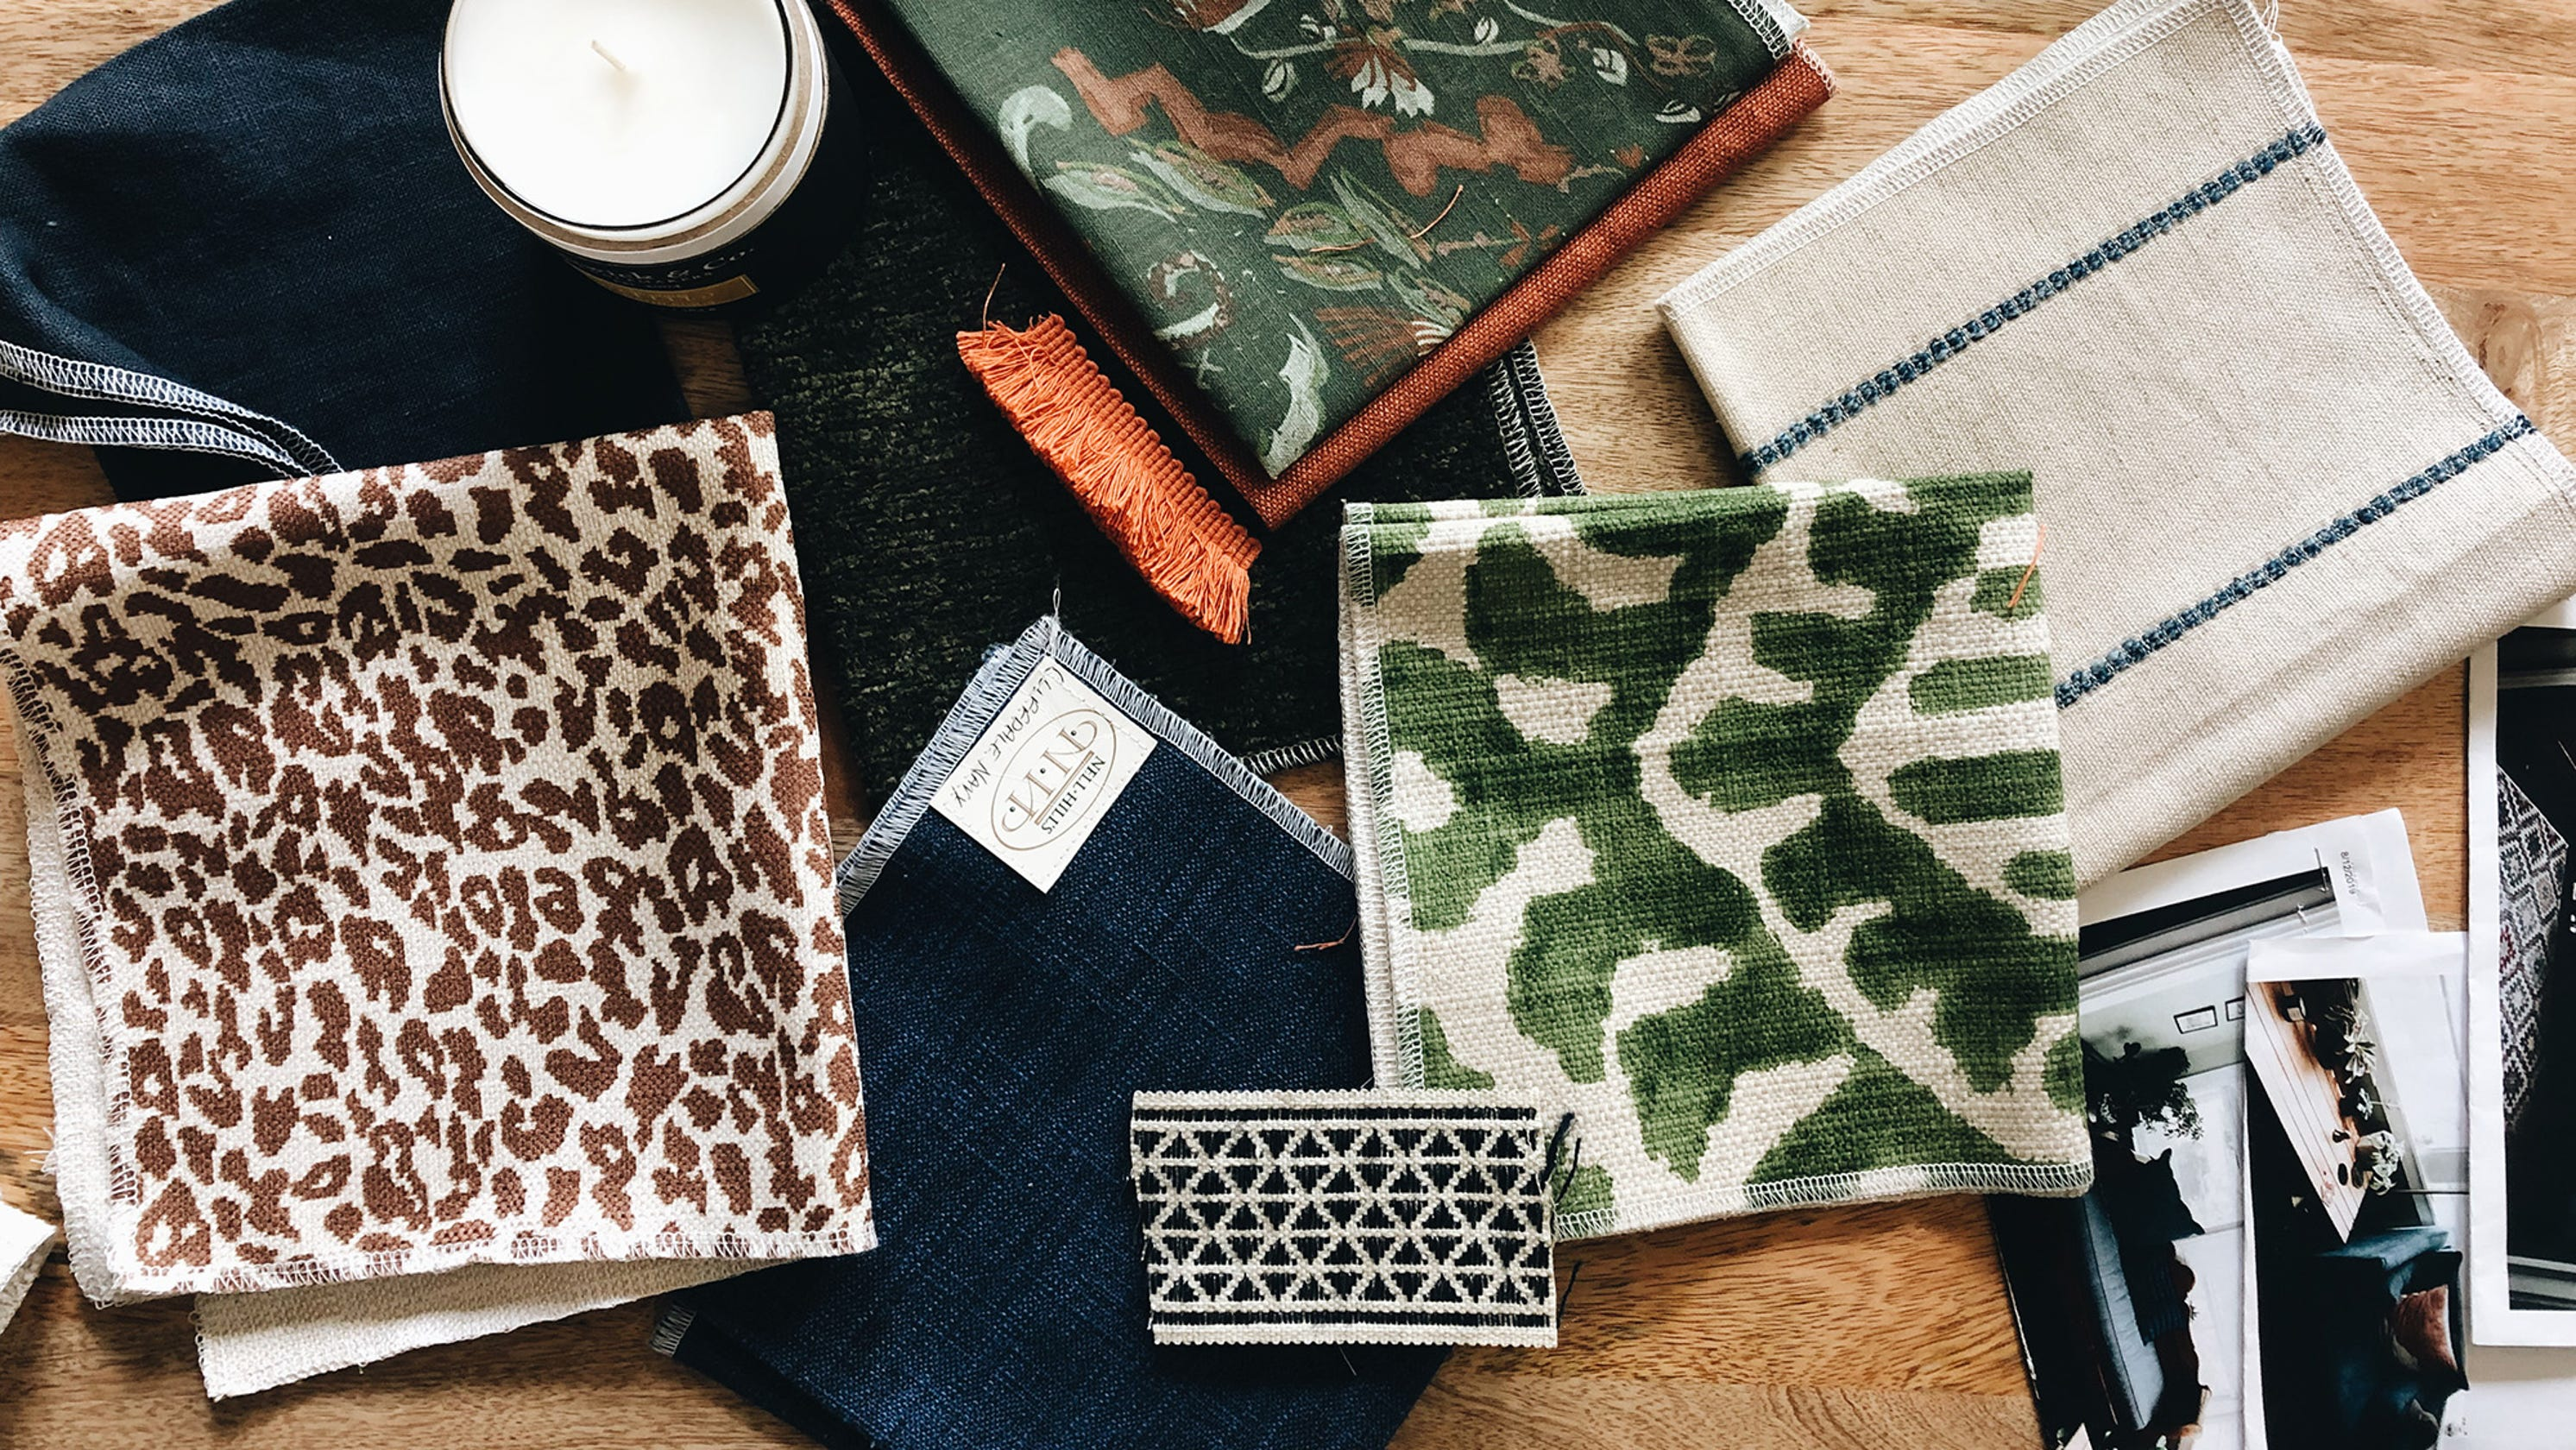 Style at Home: Getting wild with textiles